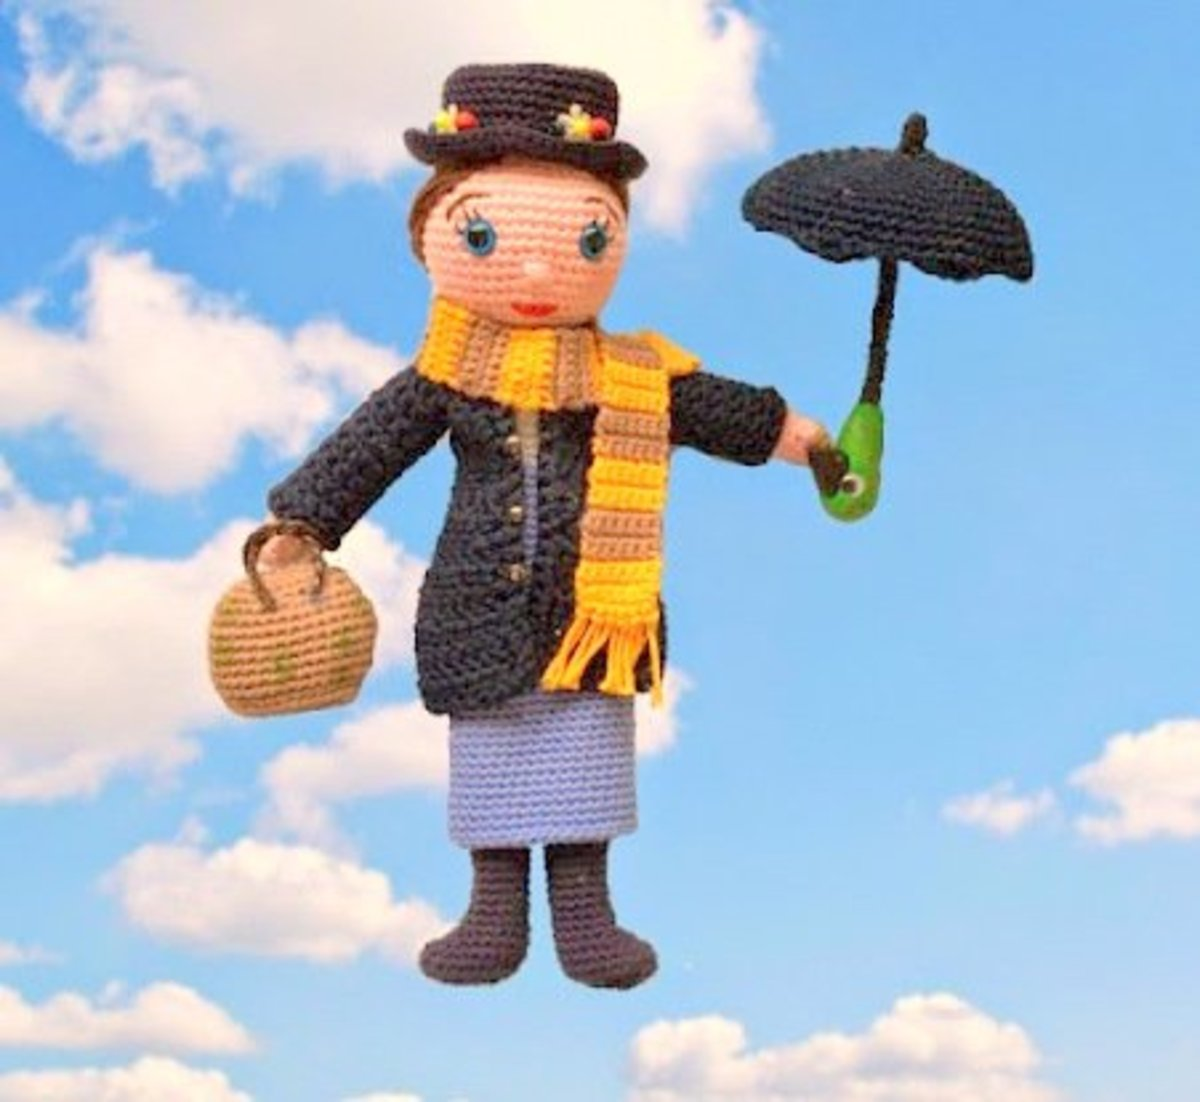 free-crochet-pattern-mary-poppins-amigurumi-doll